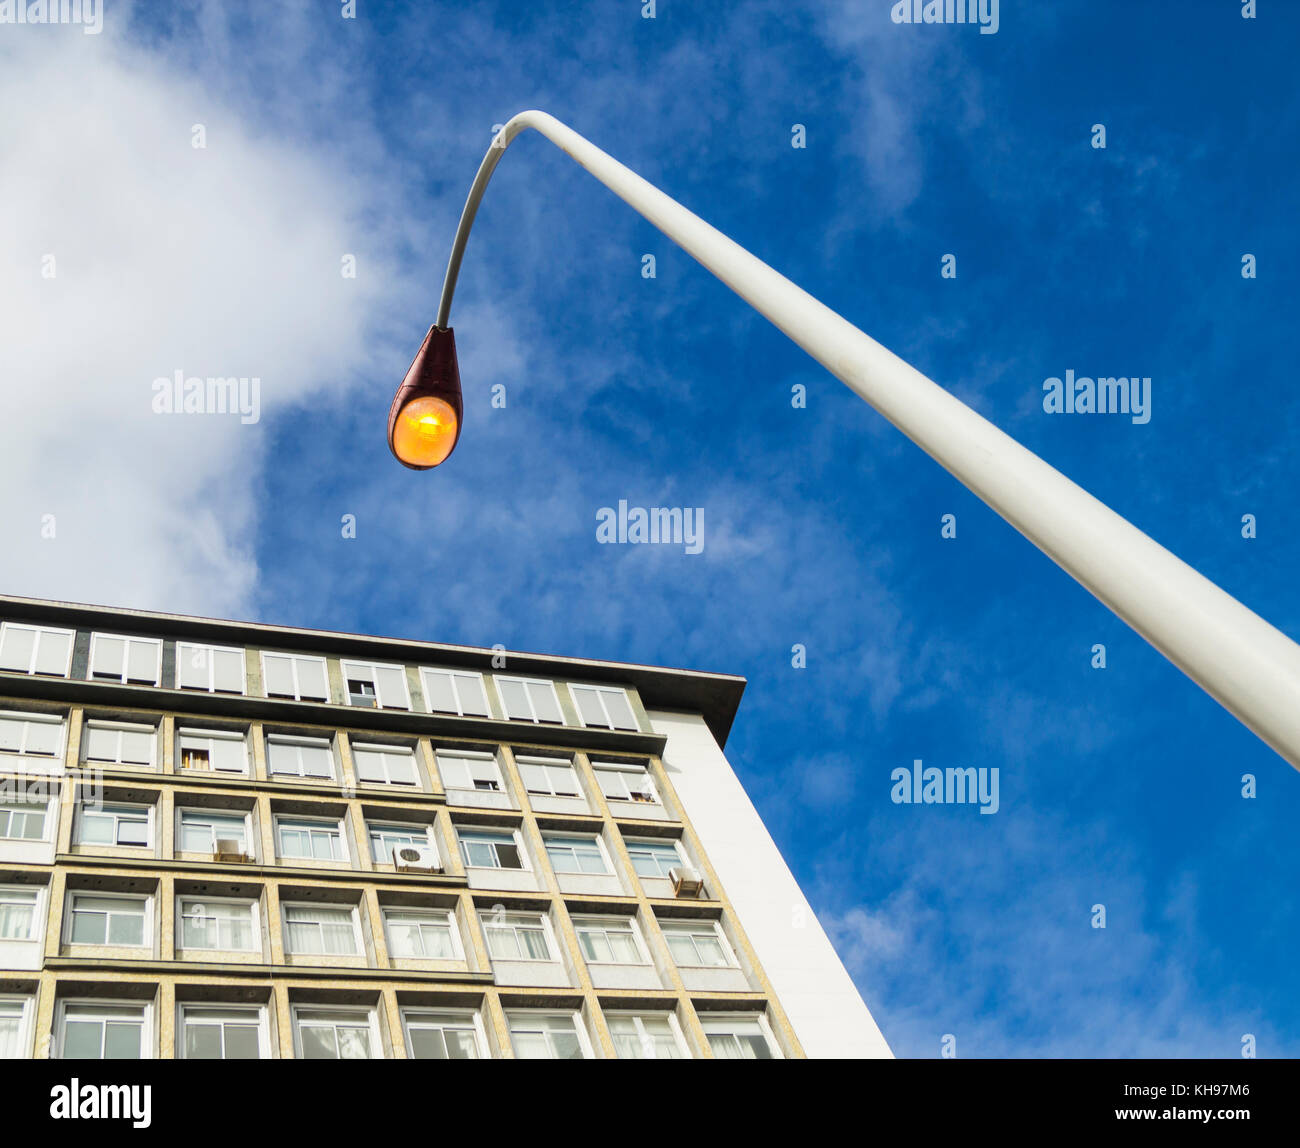 Street lighting on during day. - Stock Image